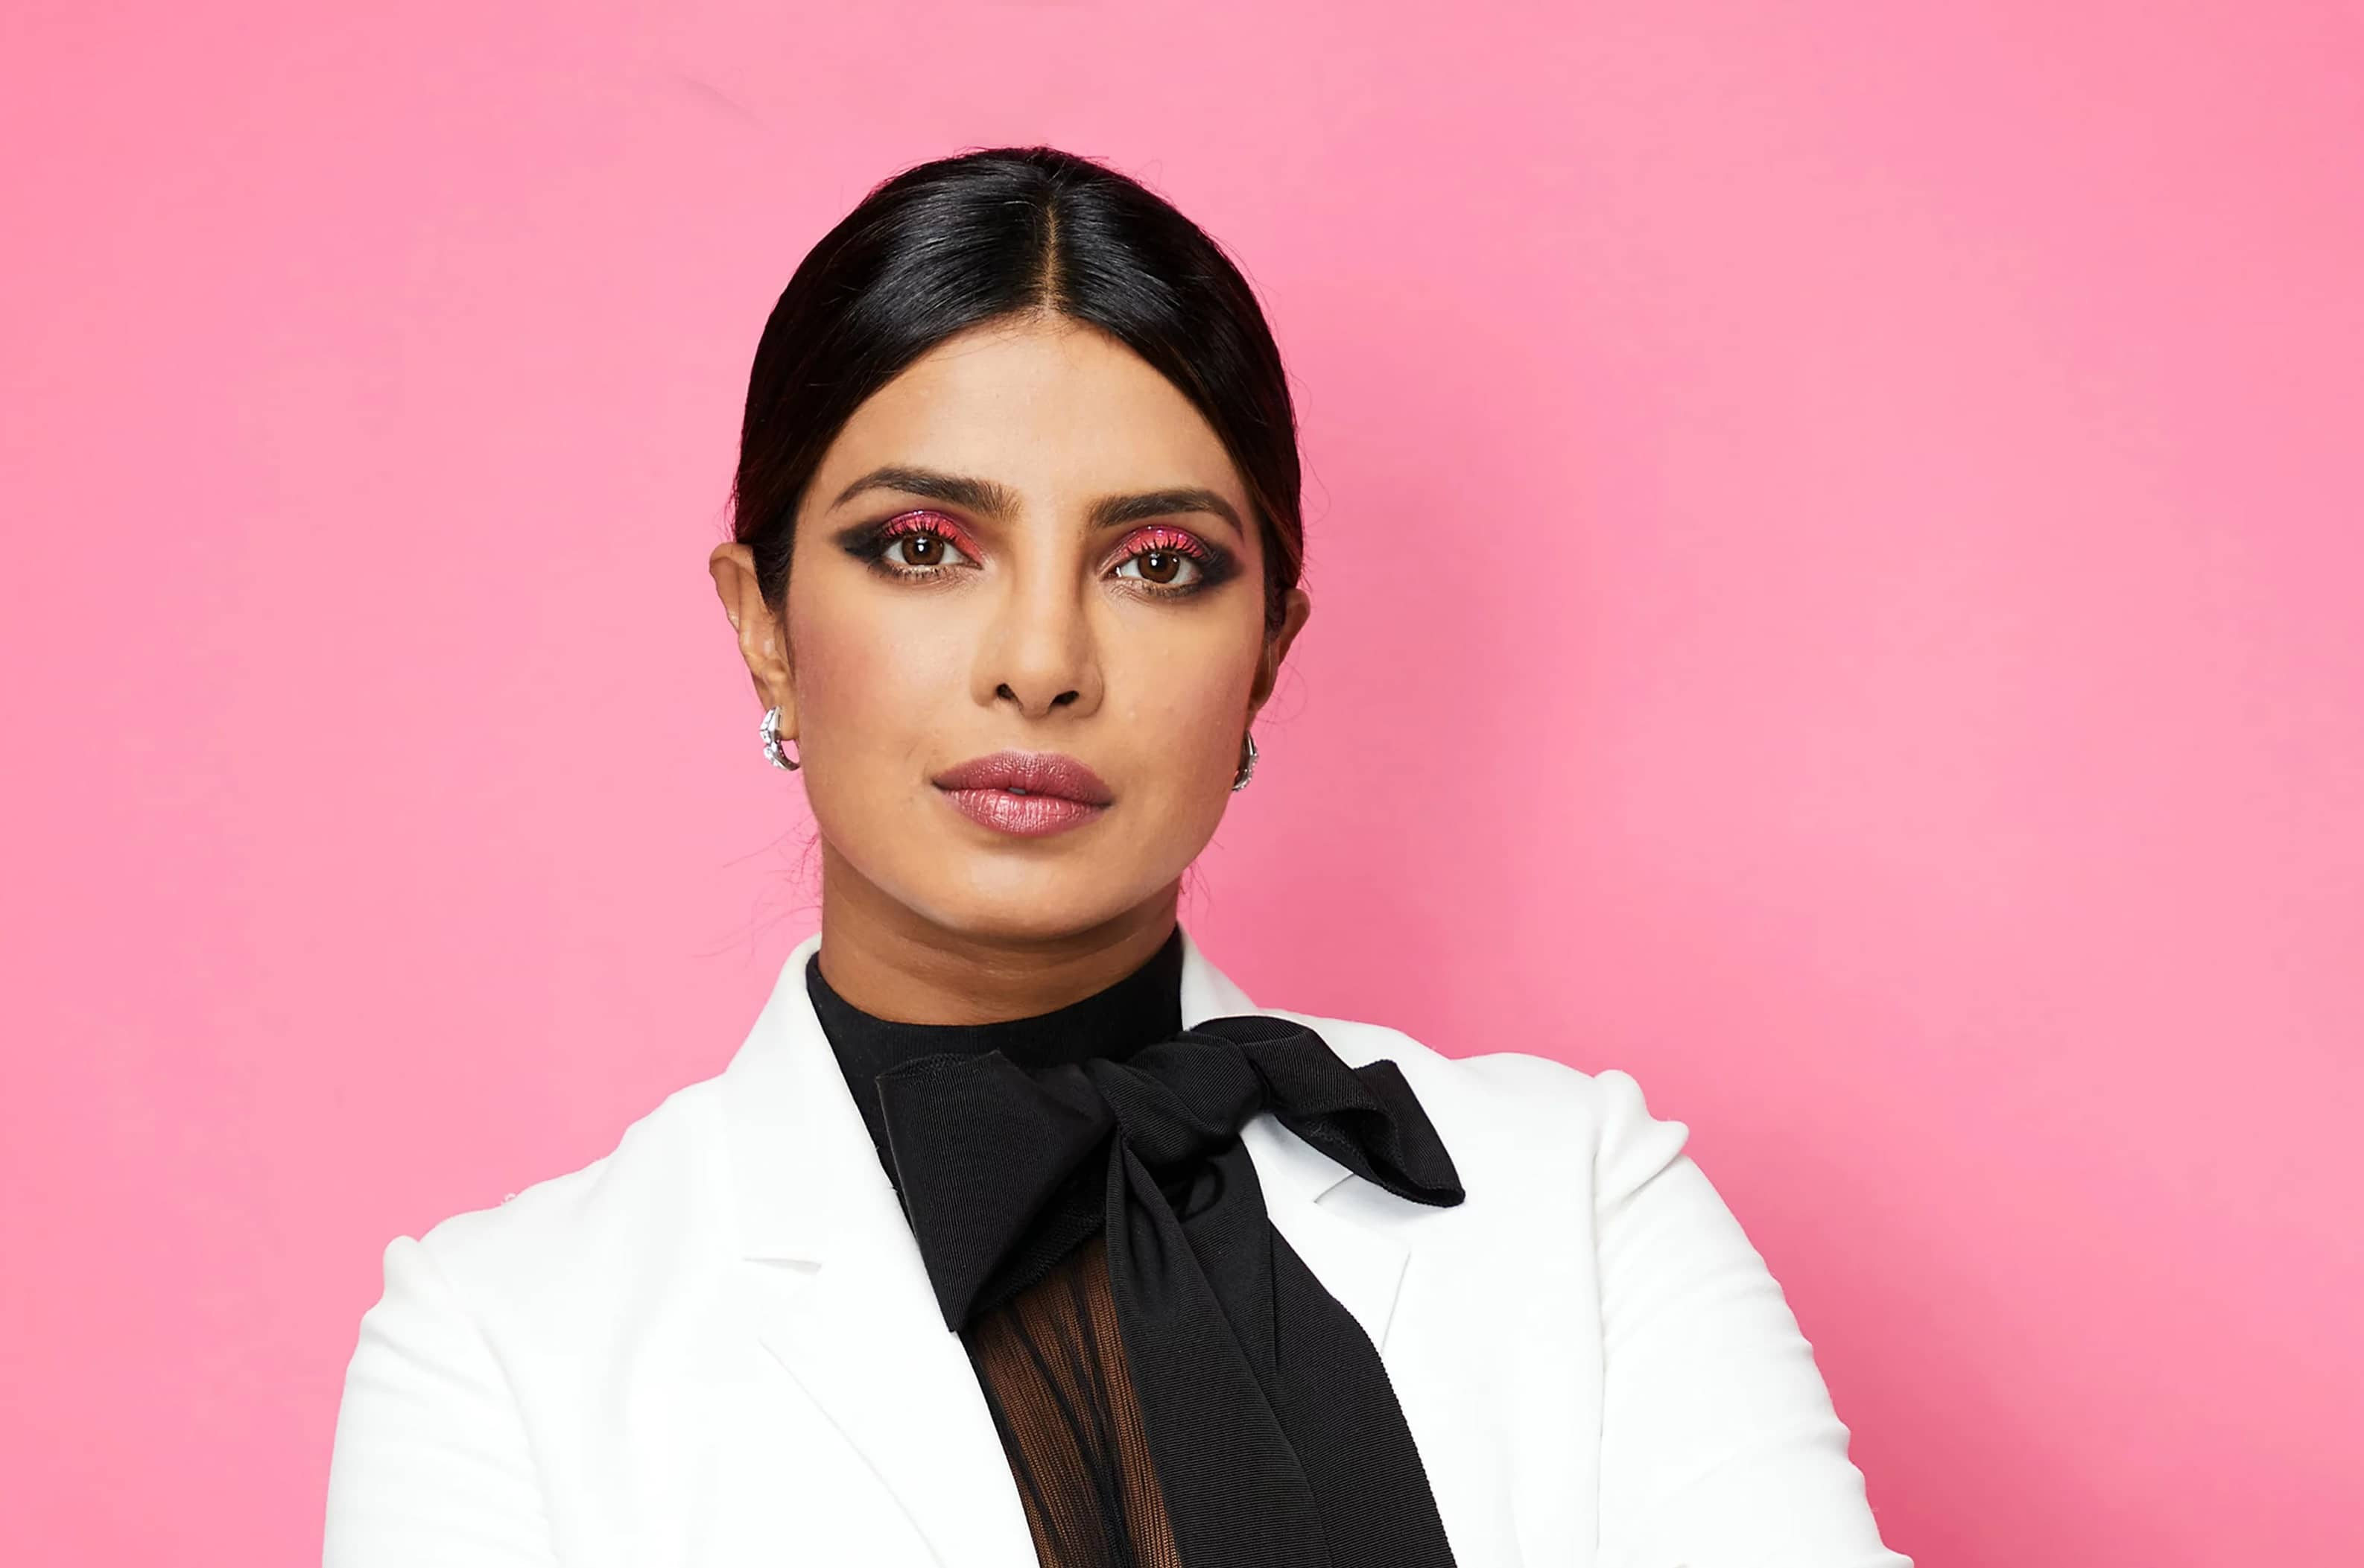 PRIYANKA CHOPRA JONAS JOINING AMAZON'S SPY SERIES 'CITADEL'